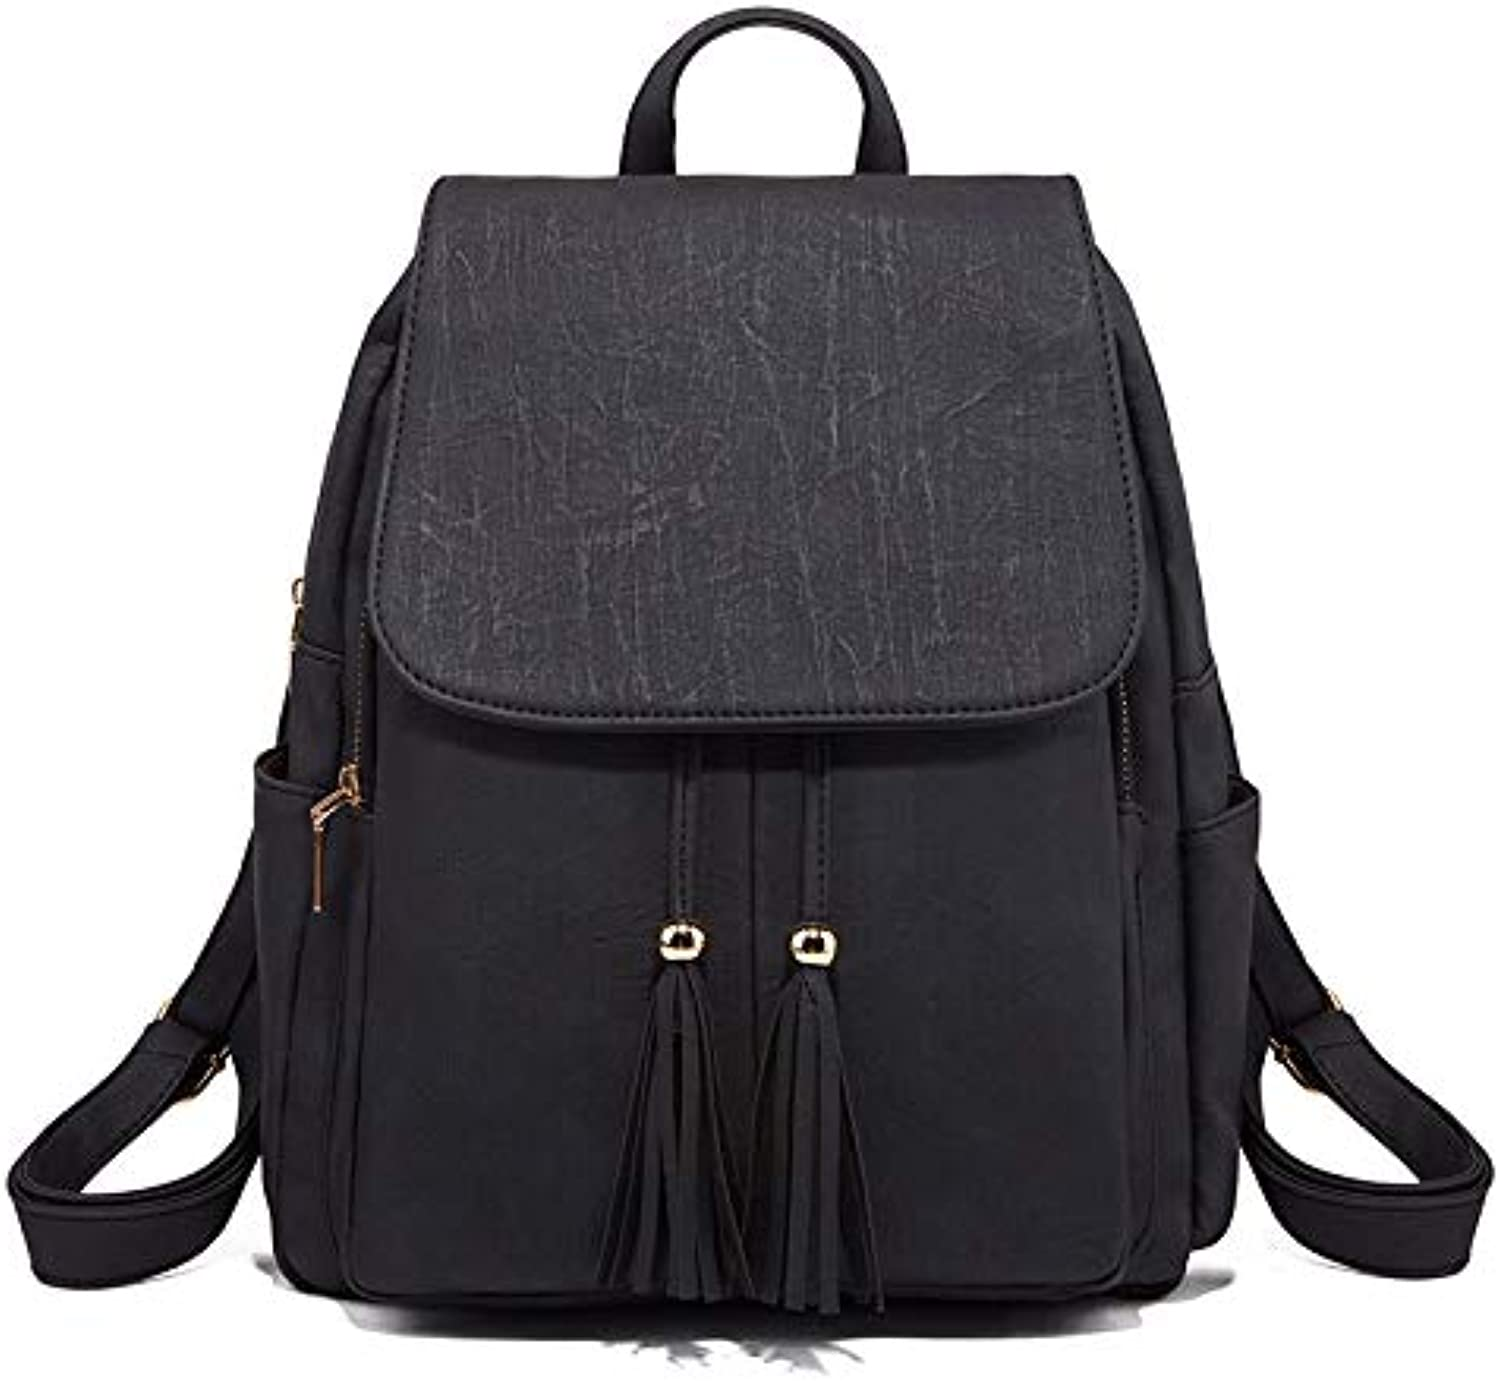 9a5944cc7fac Women soft Leather Backpack Ladies Casual School (color Black ...